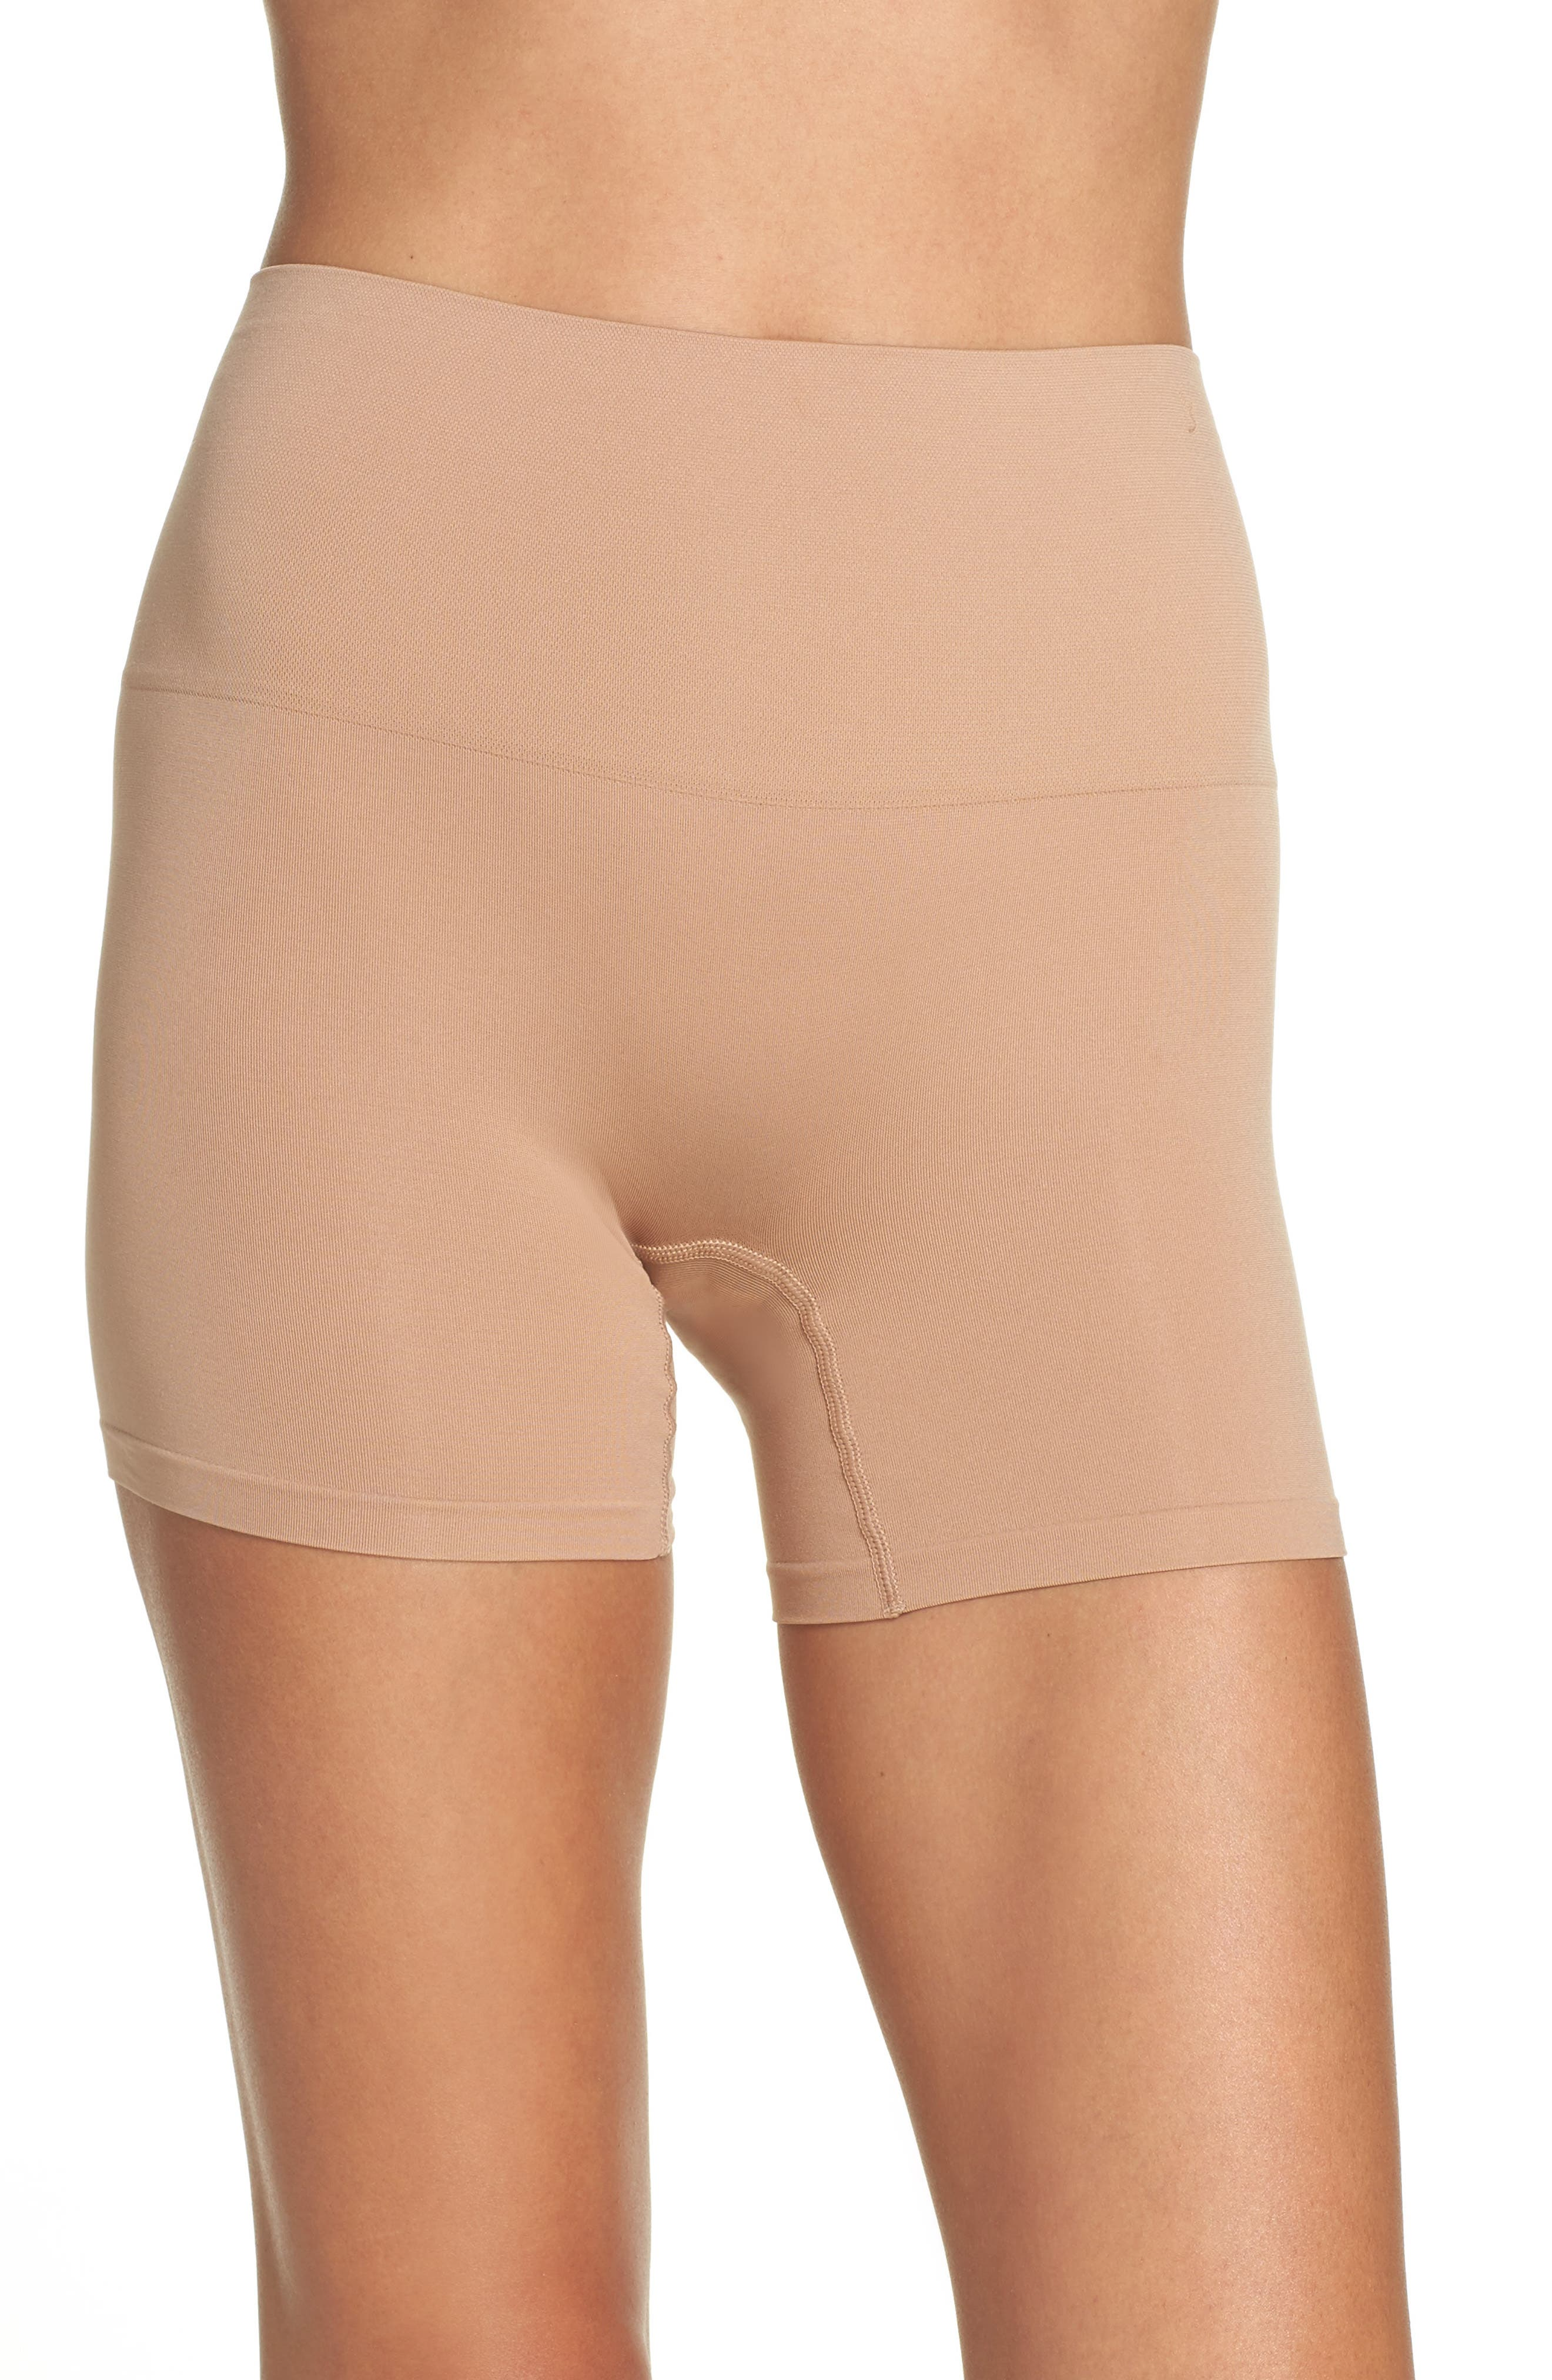 YUMMIE, Ultralight Seamless Shaping Shorts, Main thumbnail 1, color, ALMOND